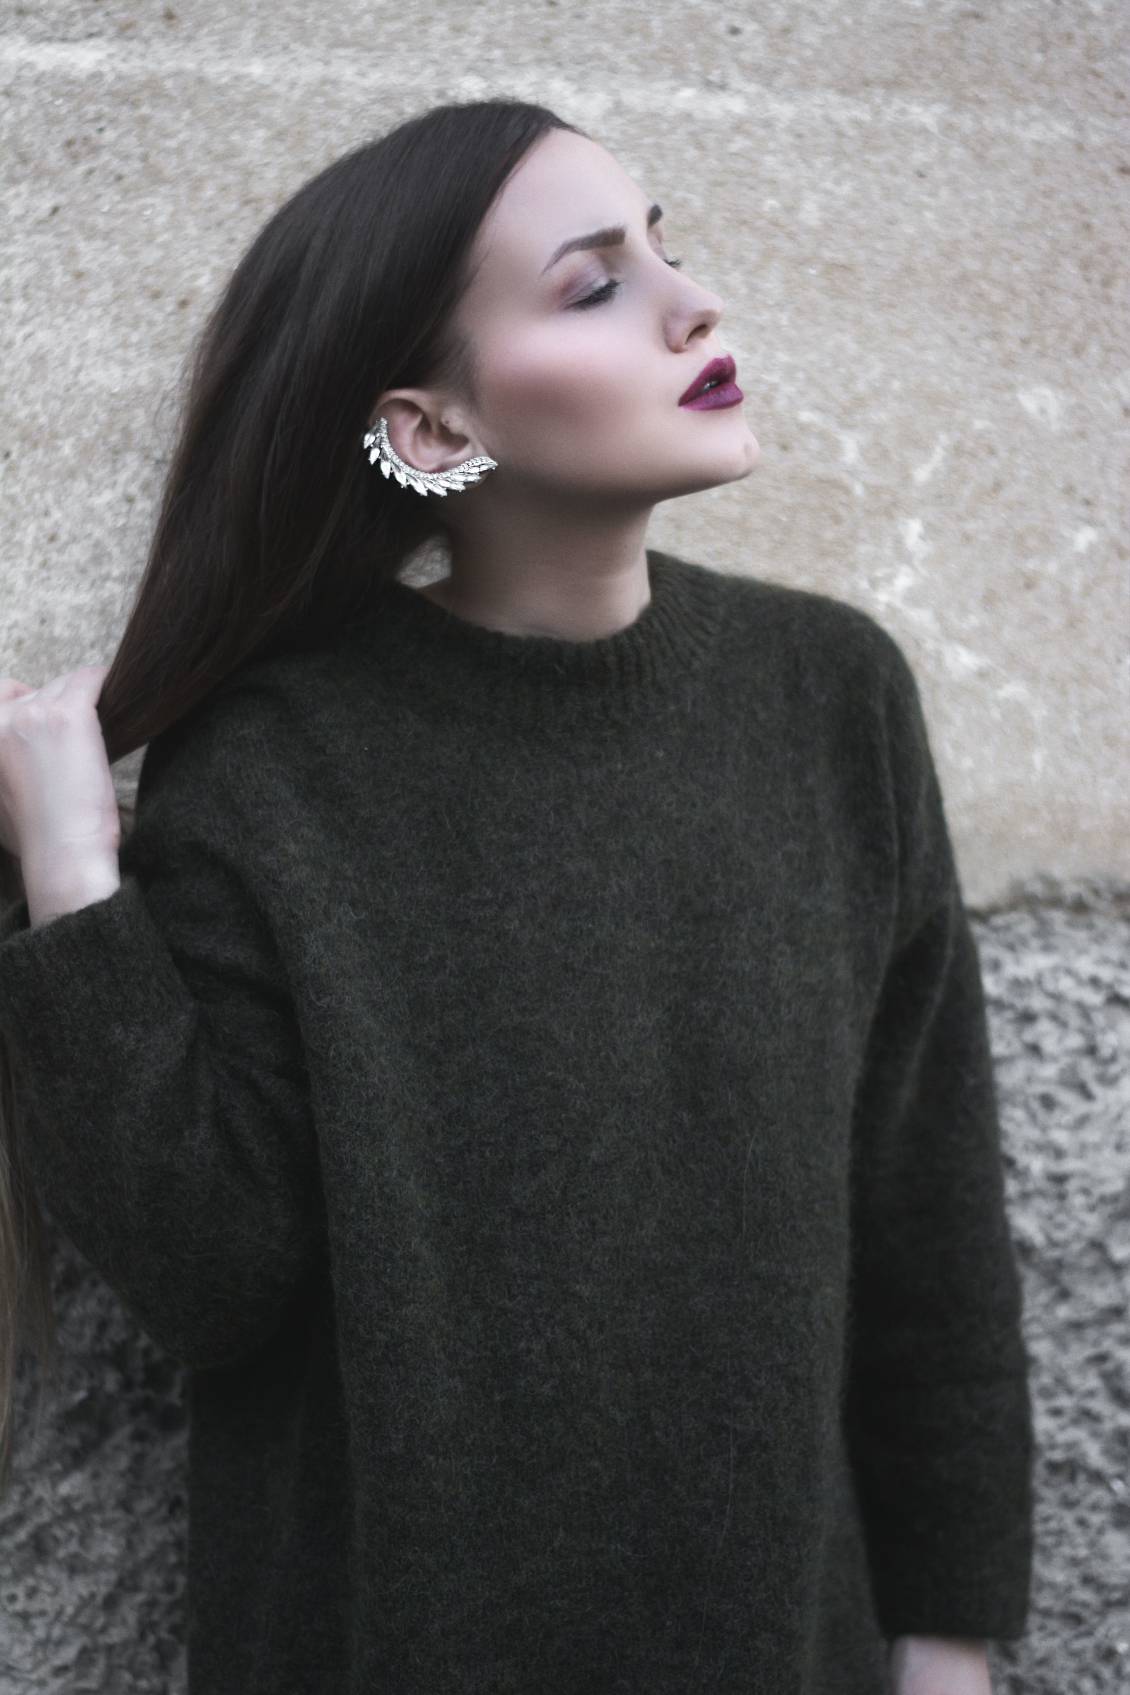 Cozy sweater and ear cuff - Fleur de Mode - Hristina Micevska